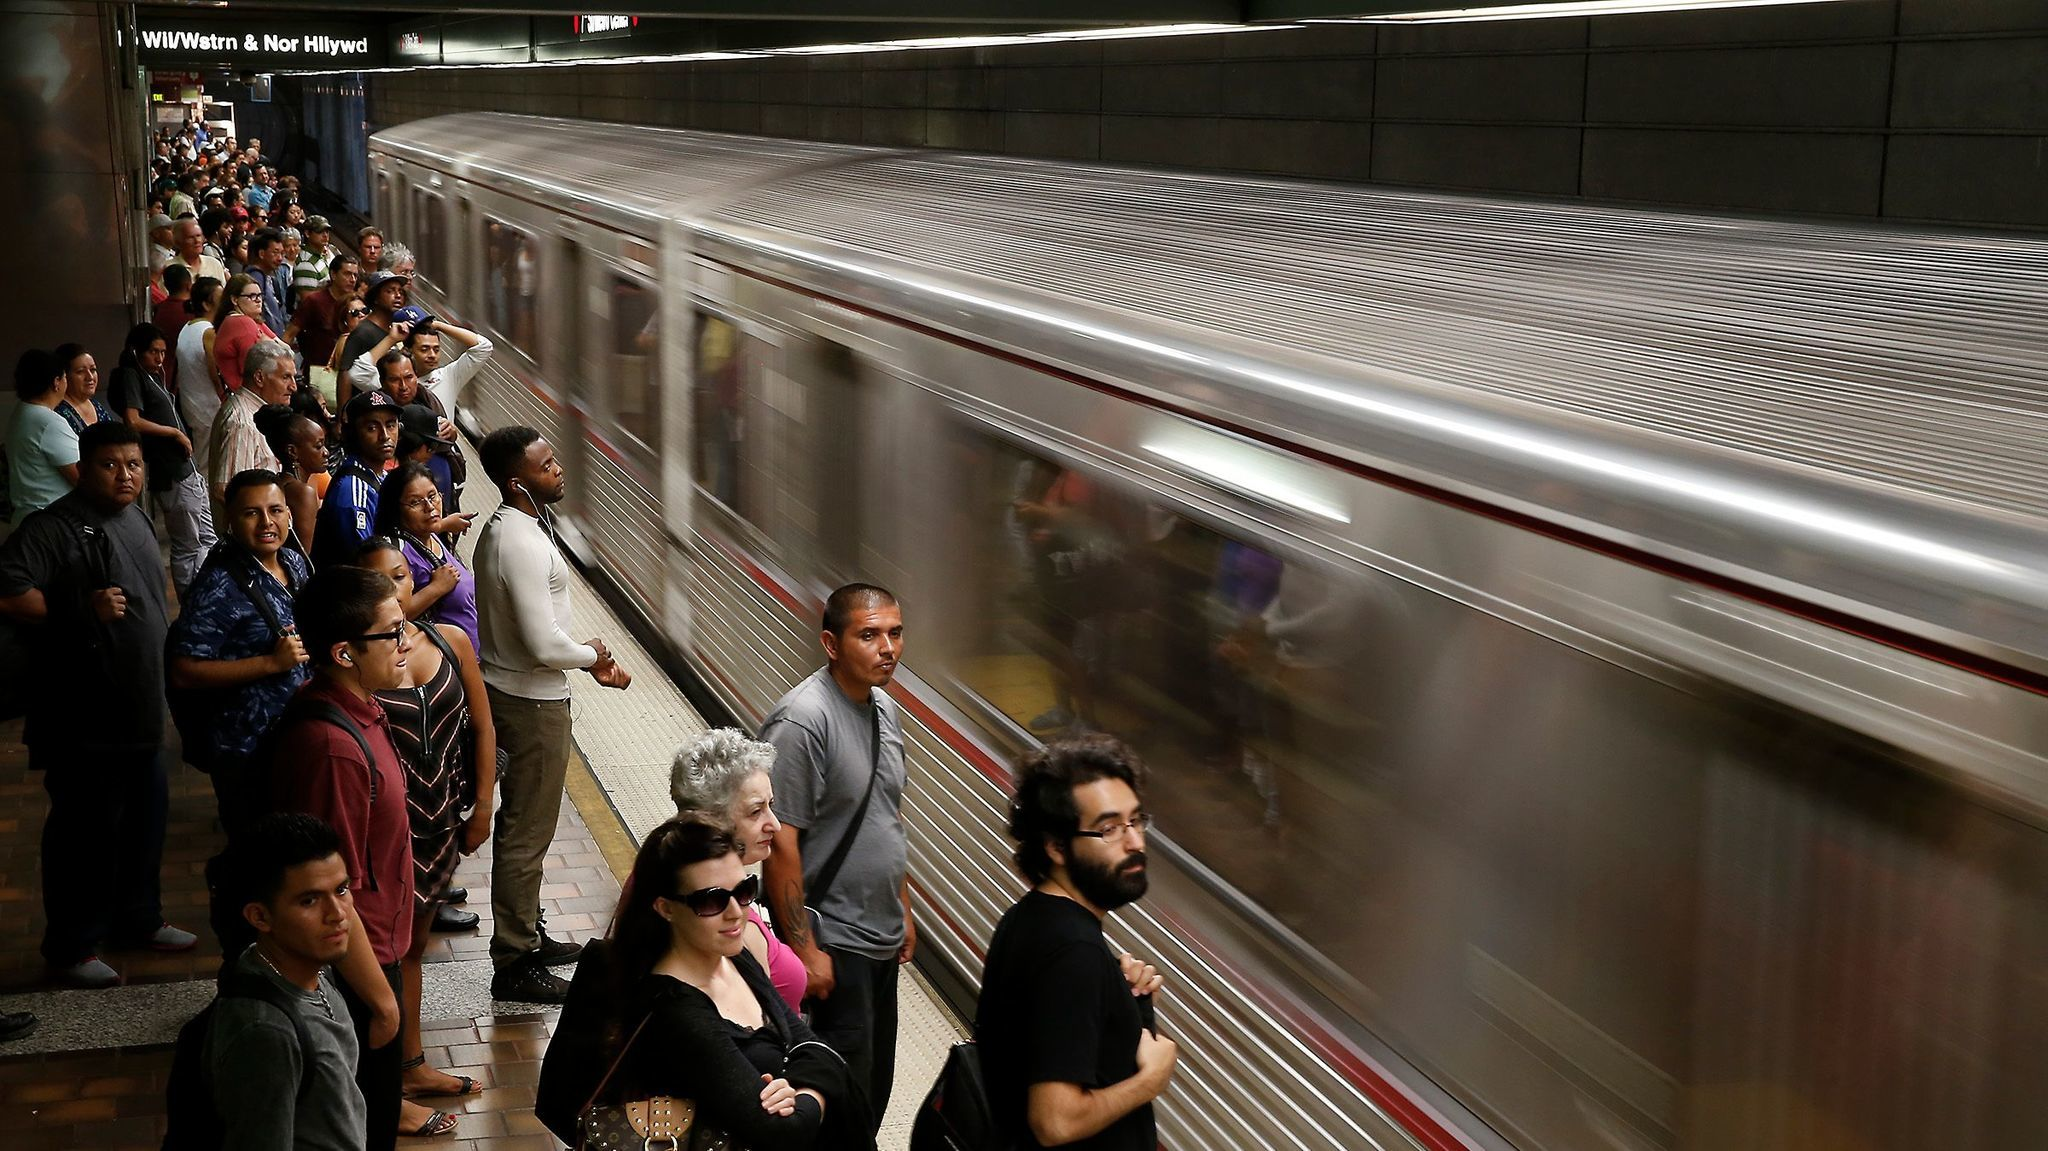 An eastbound train pulls in as commuters wait to board at the 7th Street Metro subway station in 2014.